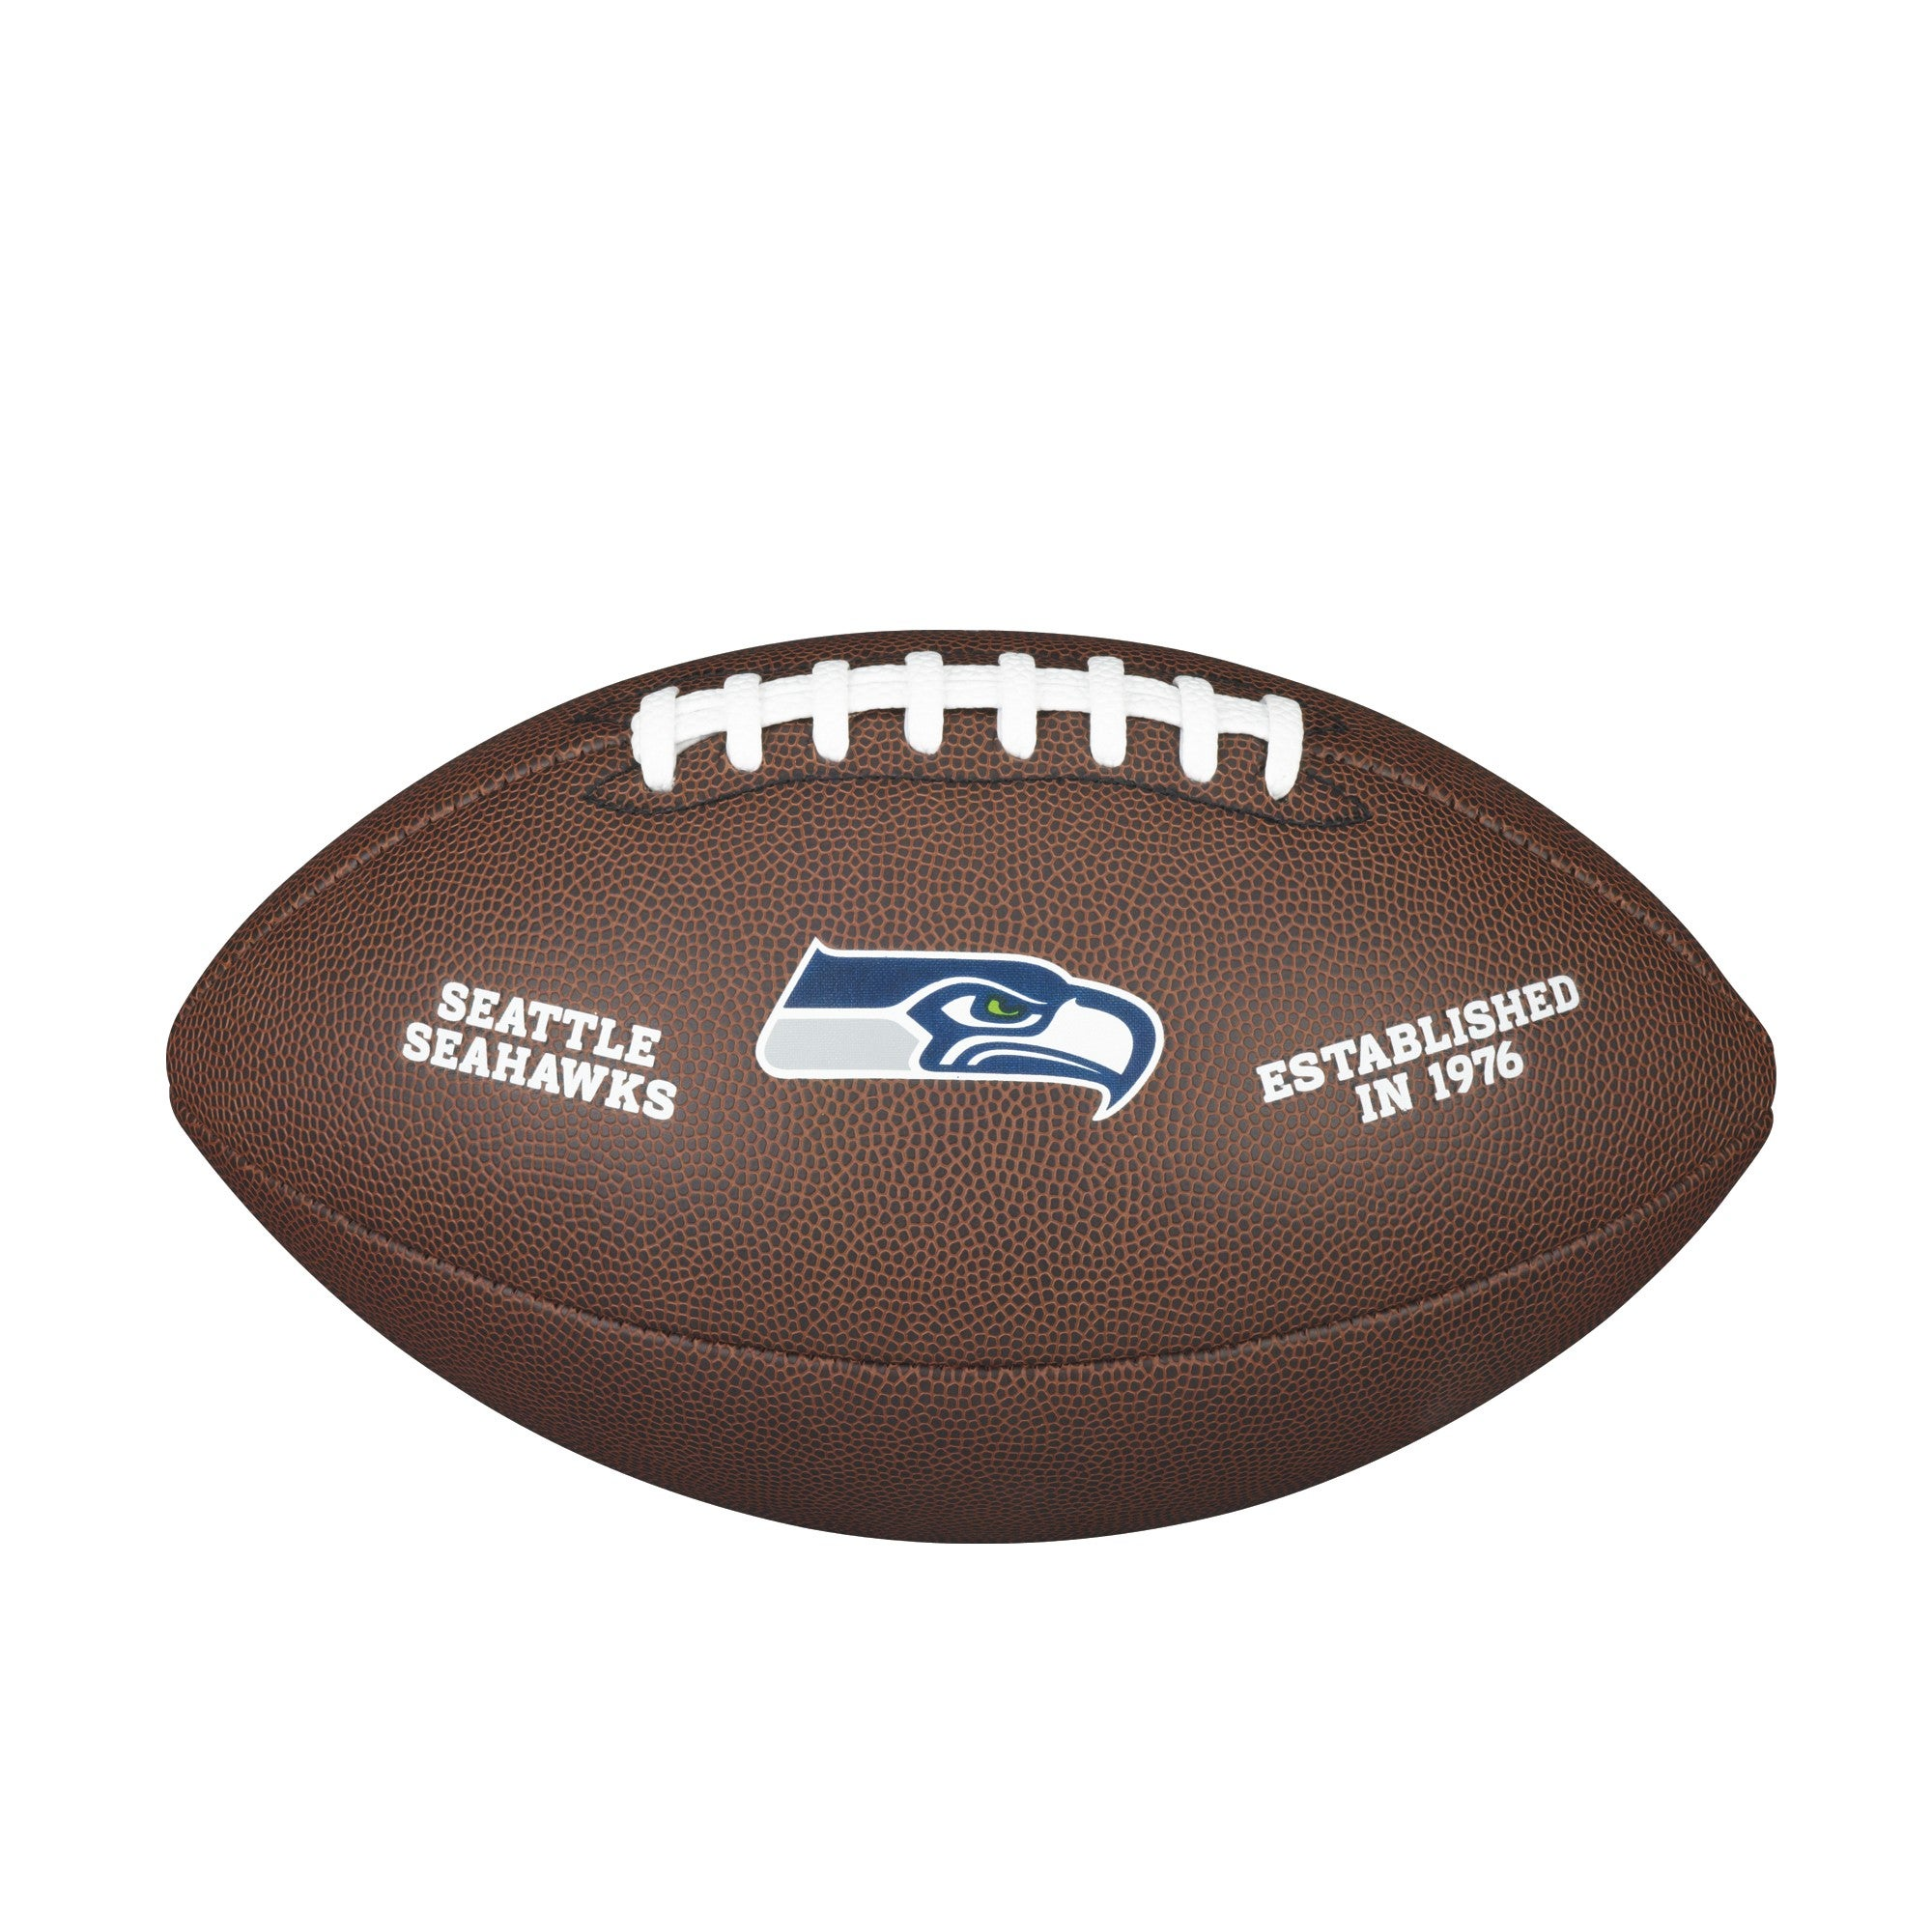 NFL TEAM LOGO COMPOSITE FOOTBALL - OFFICIAL, SEATTLE SEAHAWKS